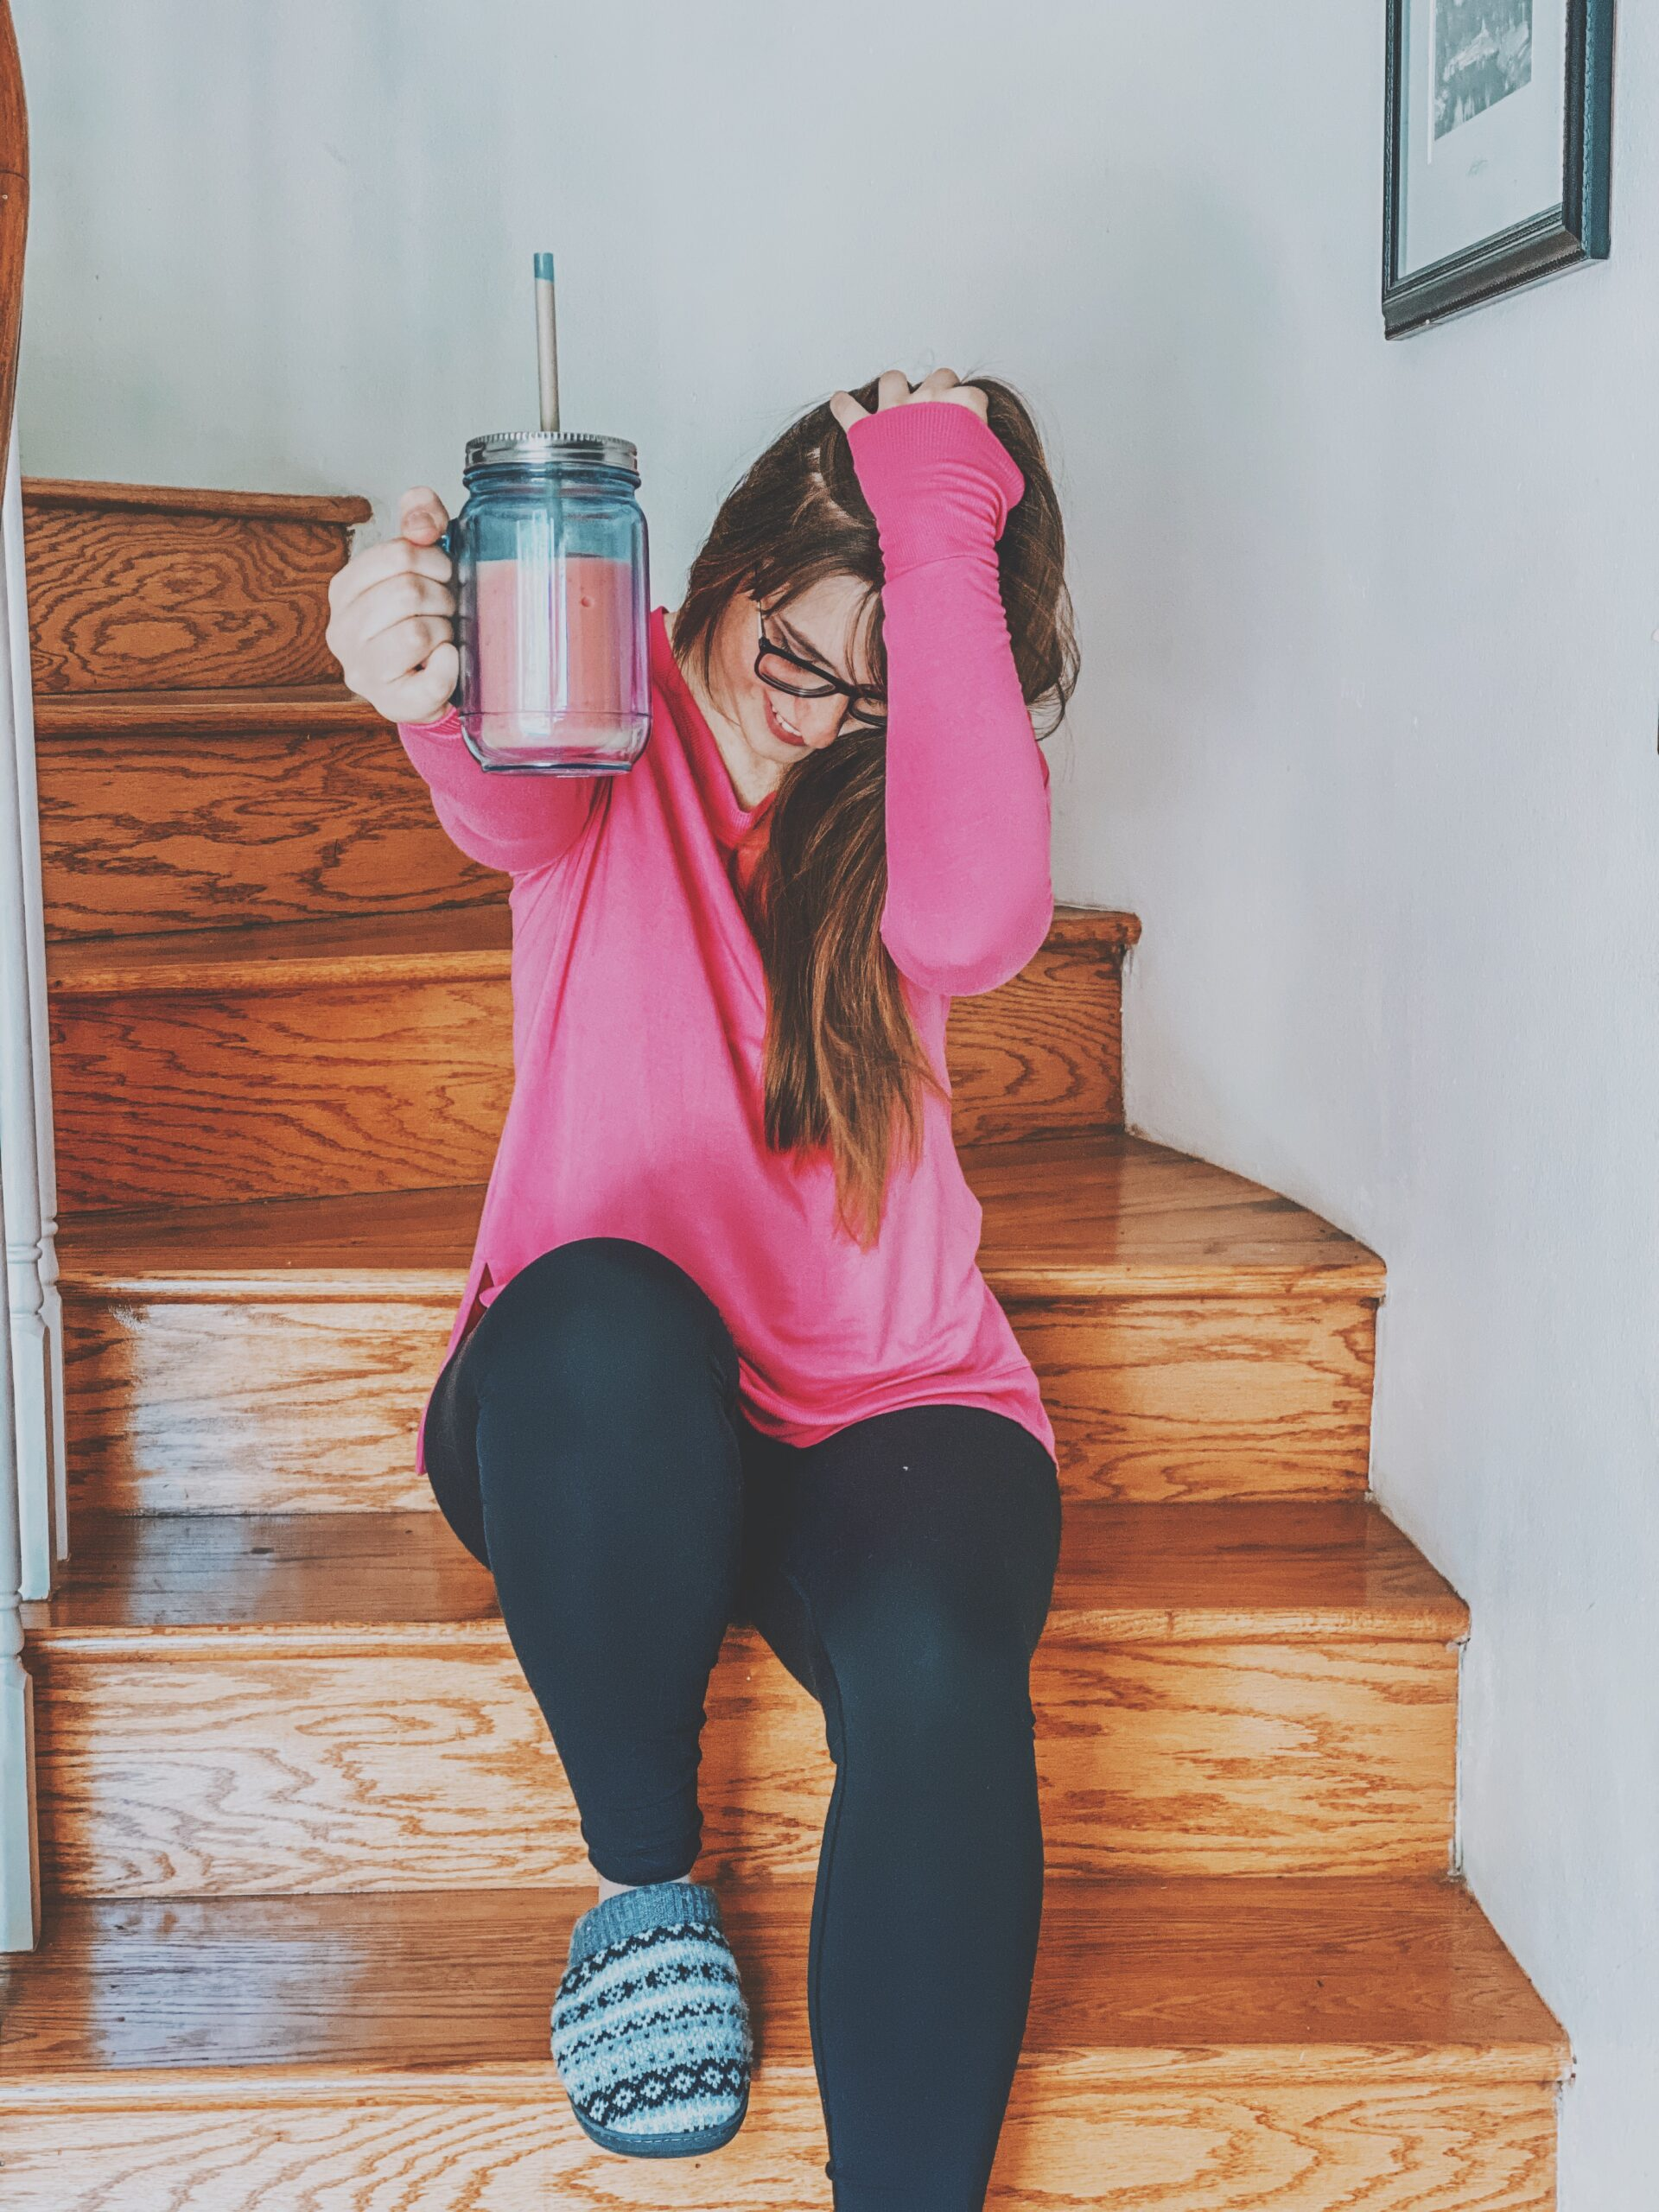 Girl holding up a pink smoothie